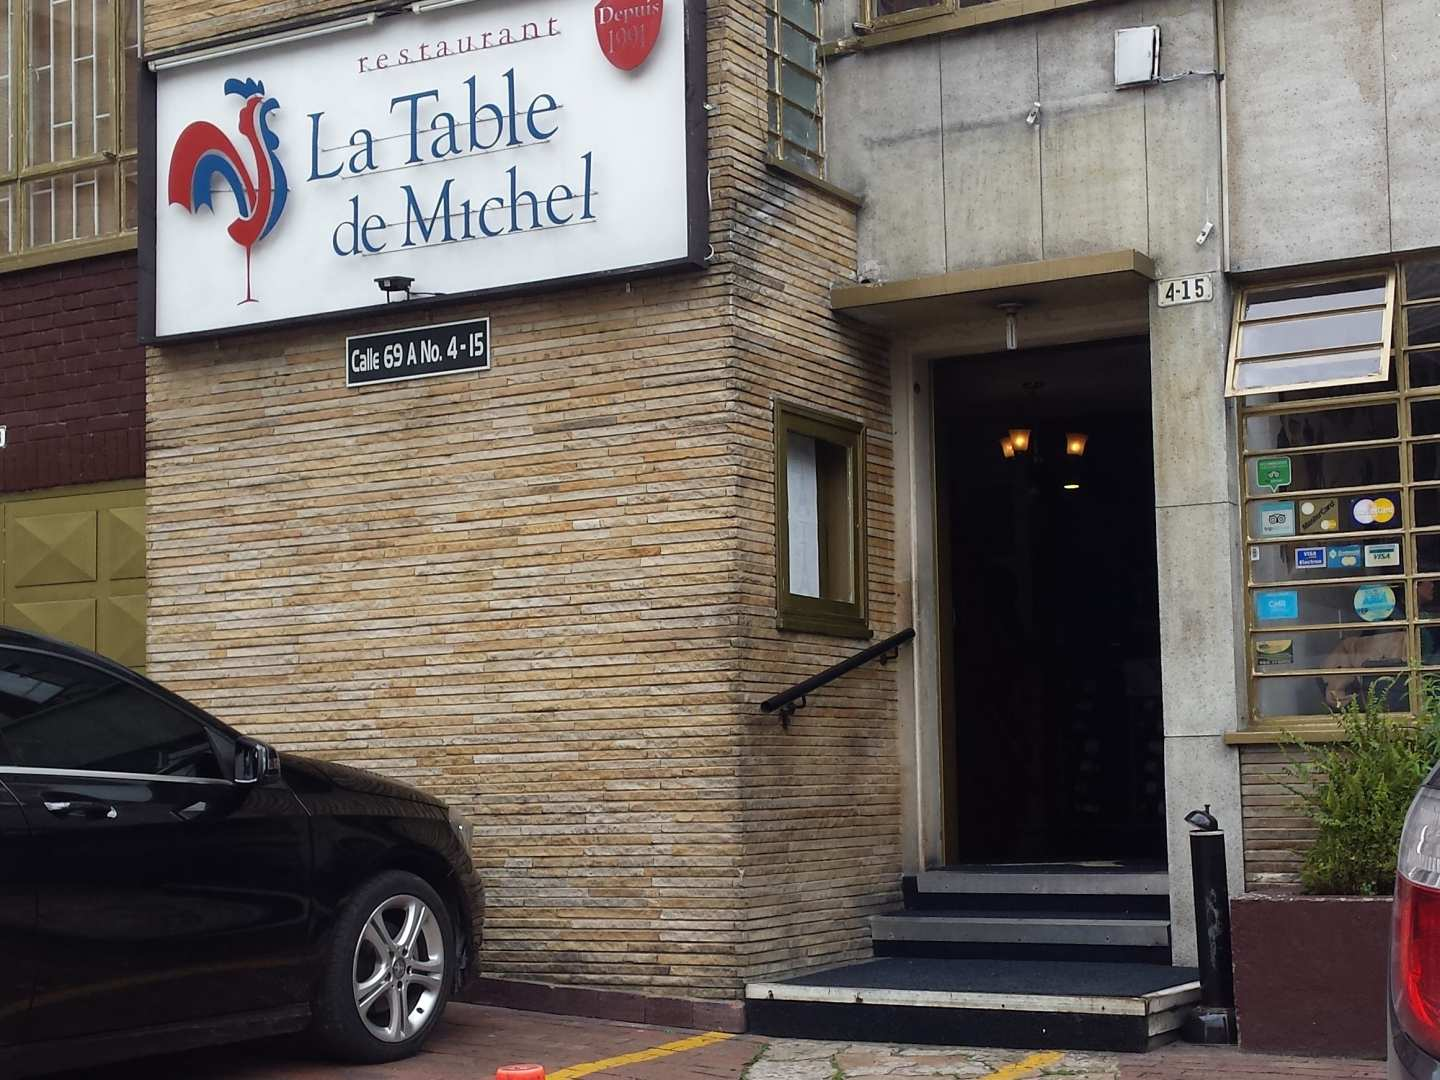 La Table de Michel